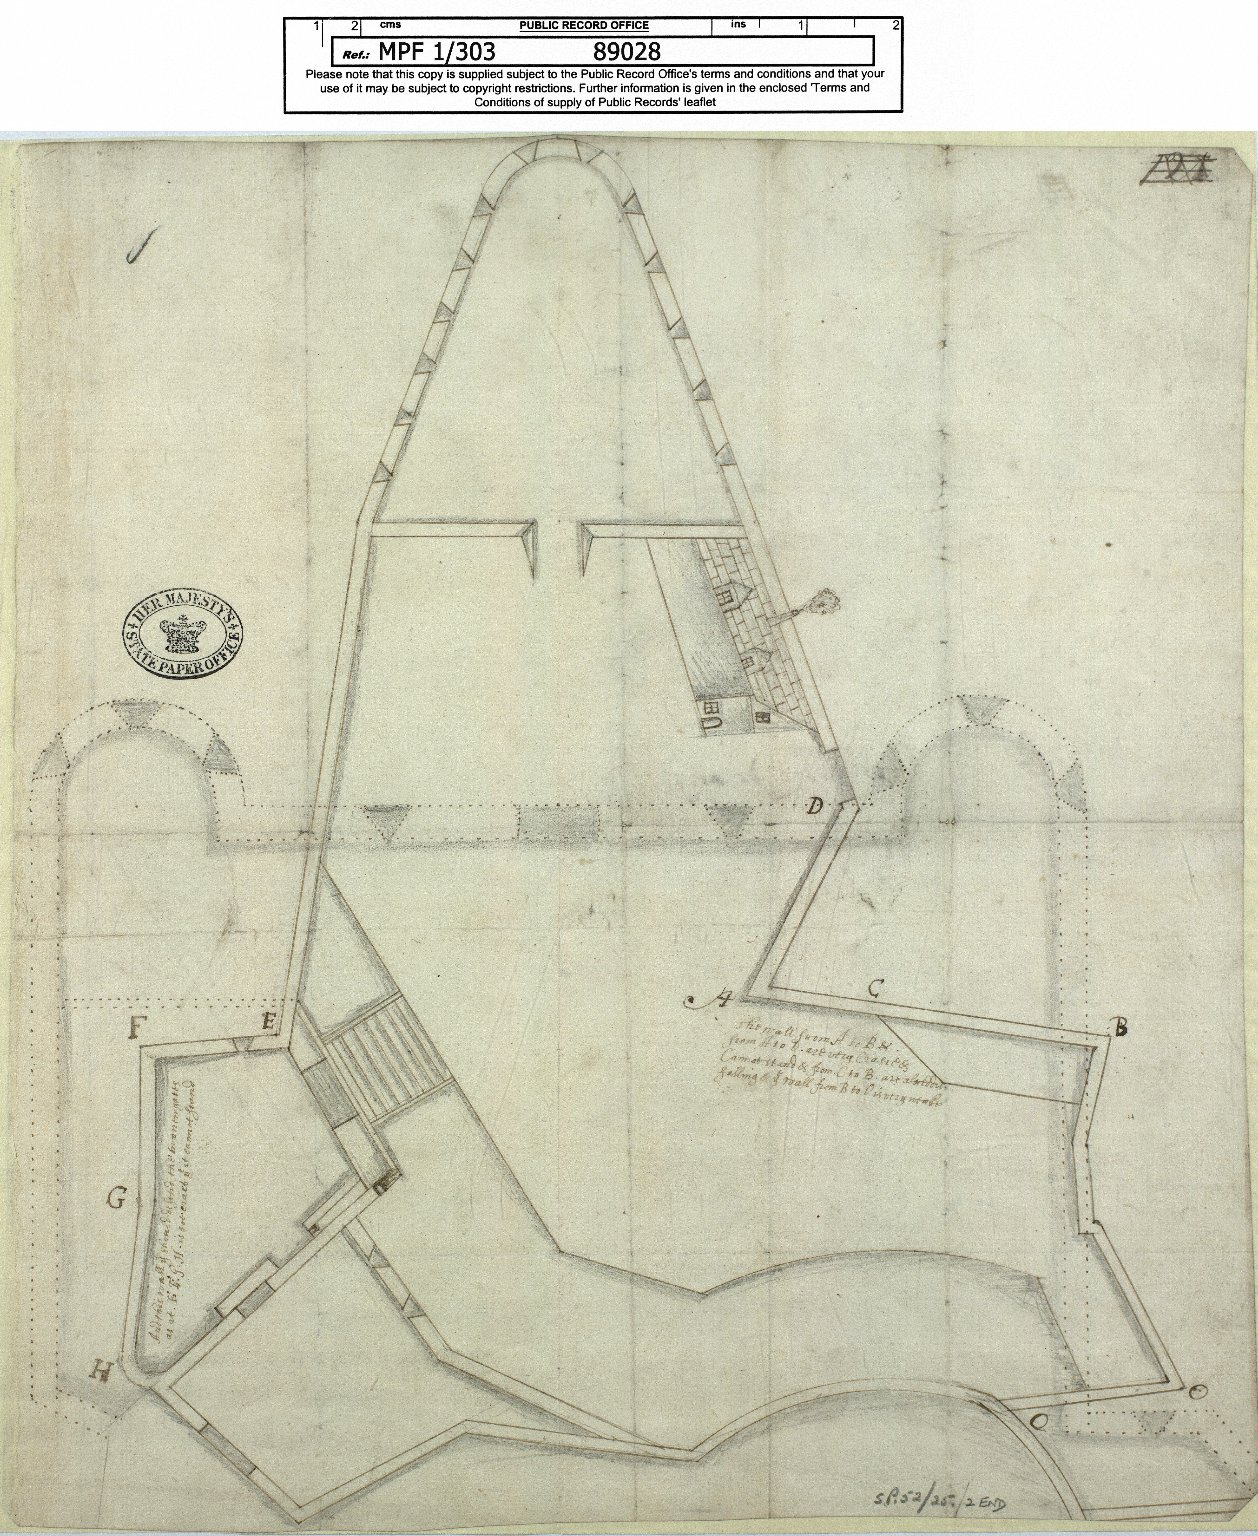 [Plan of the state of Edinburgh Town Walls] [1 of 1]